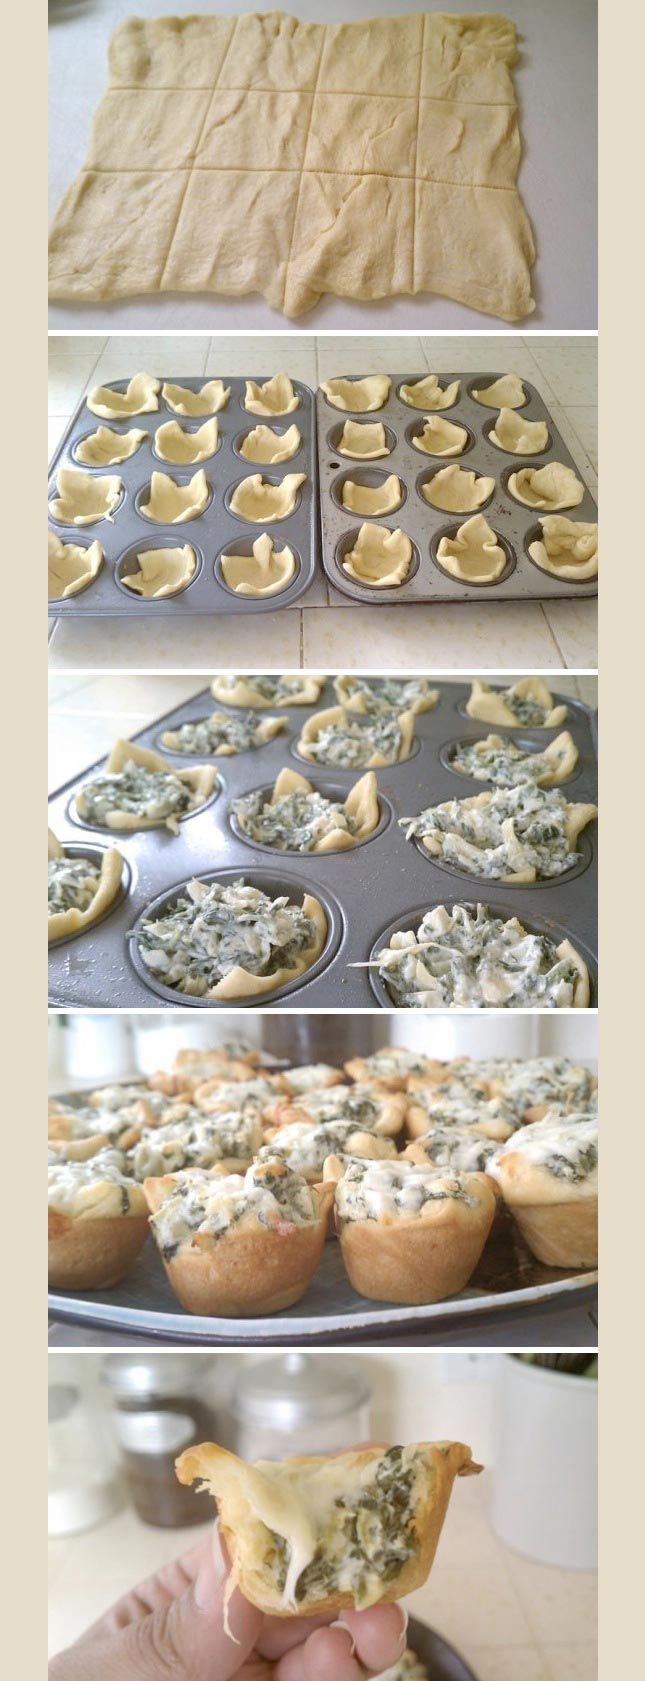 Spinach Artichoke Bites (step-by-step pictures!)